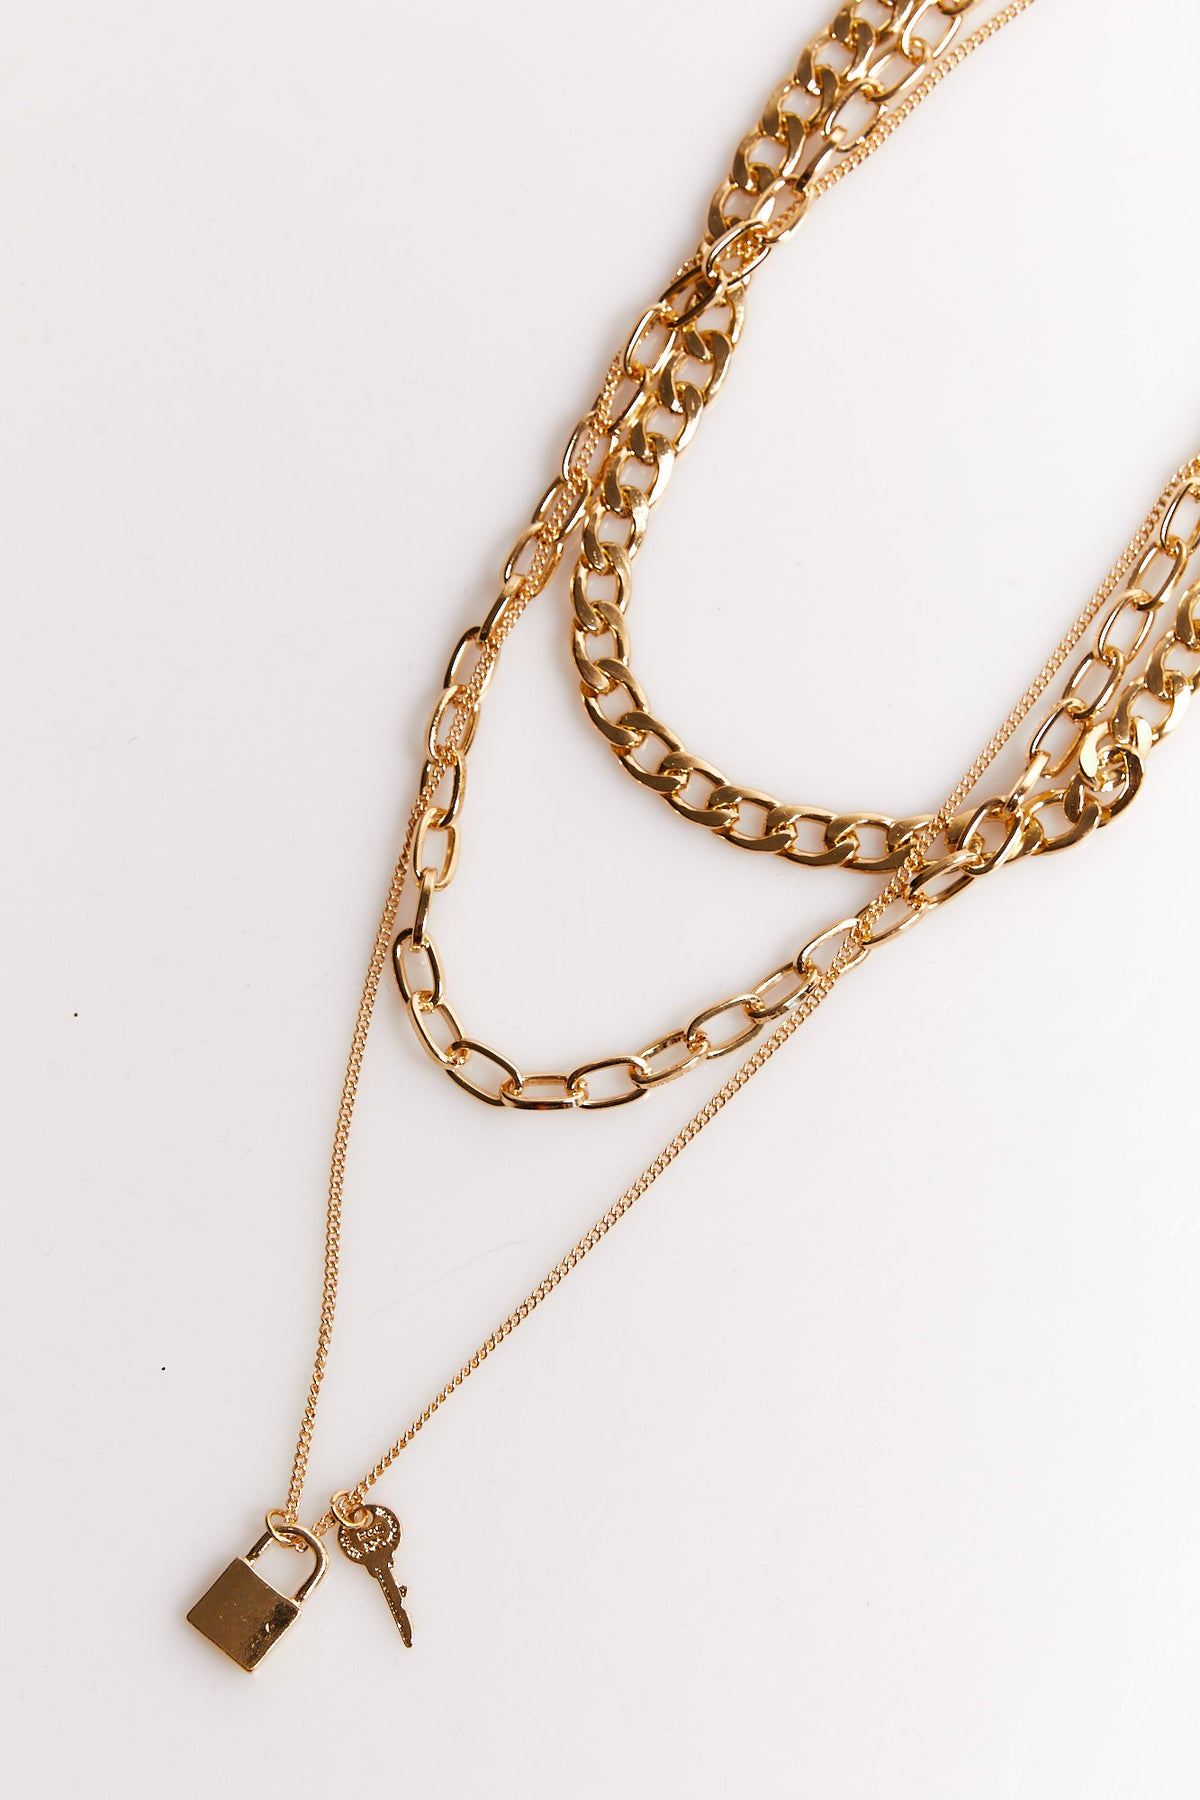 NTH Lock Chain Necklace Gold